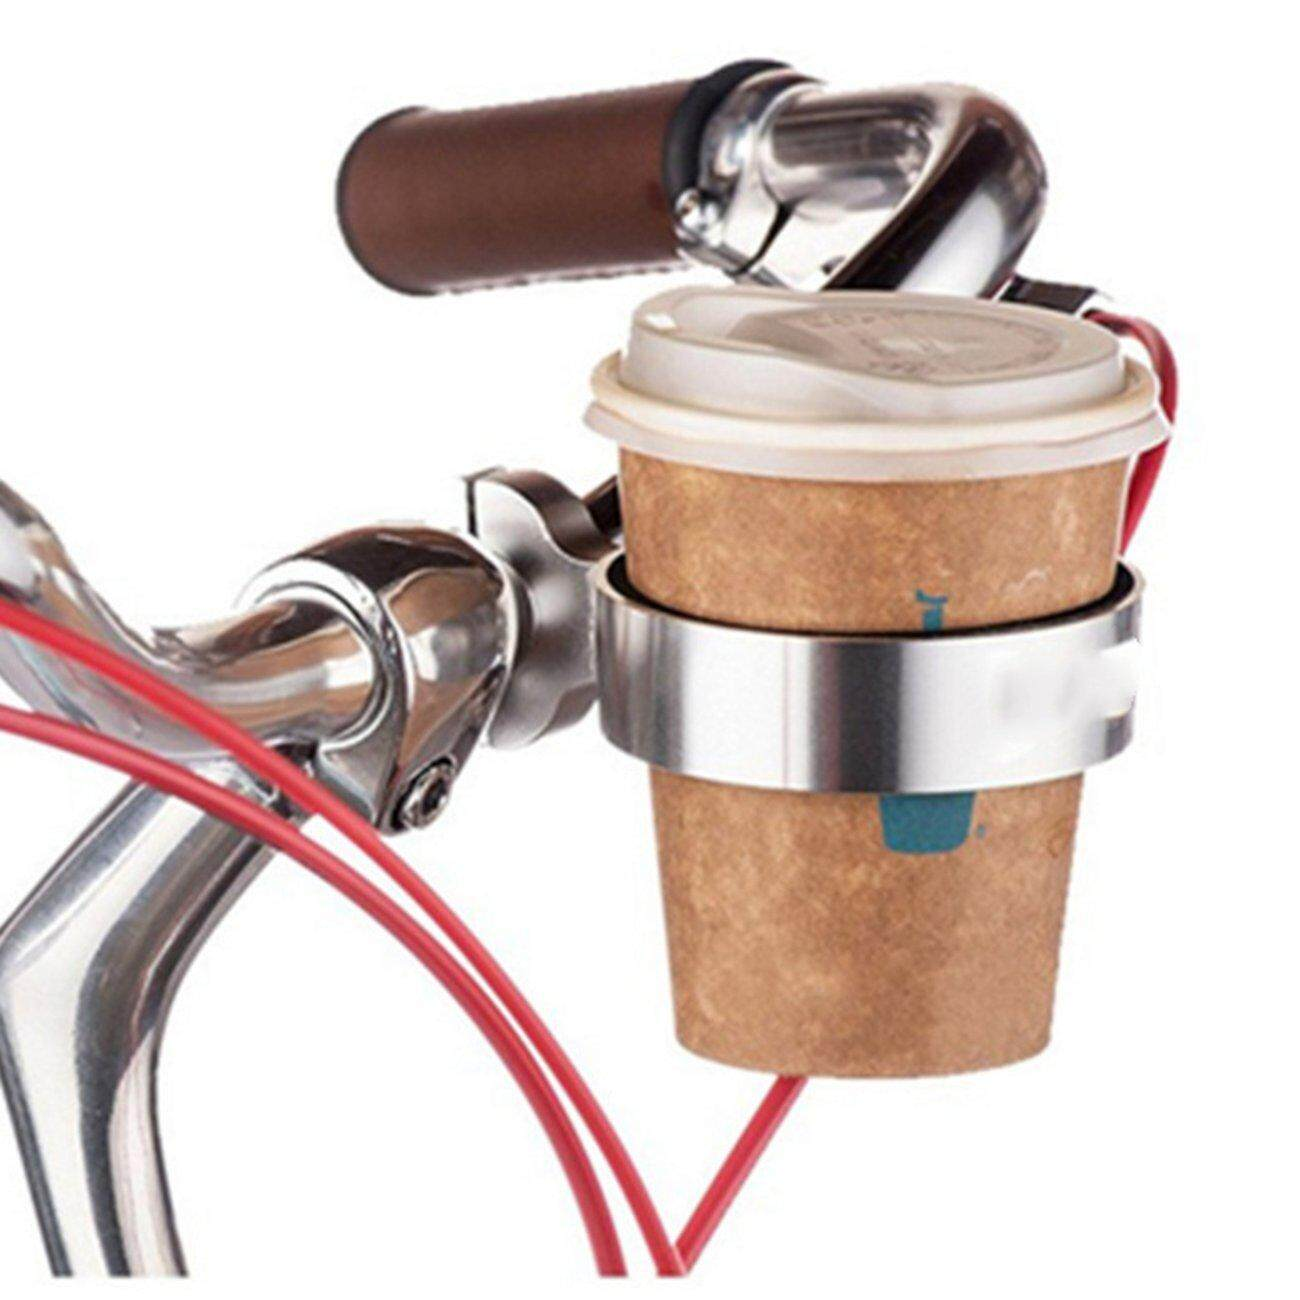 UINN Bicycle Bottle Holder Bike Coffee Cup Holder Tea Cup Holder Bicycle Bracket